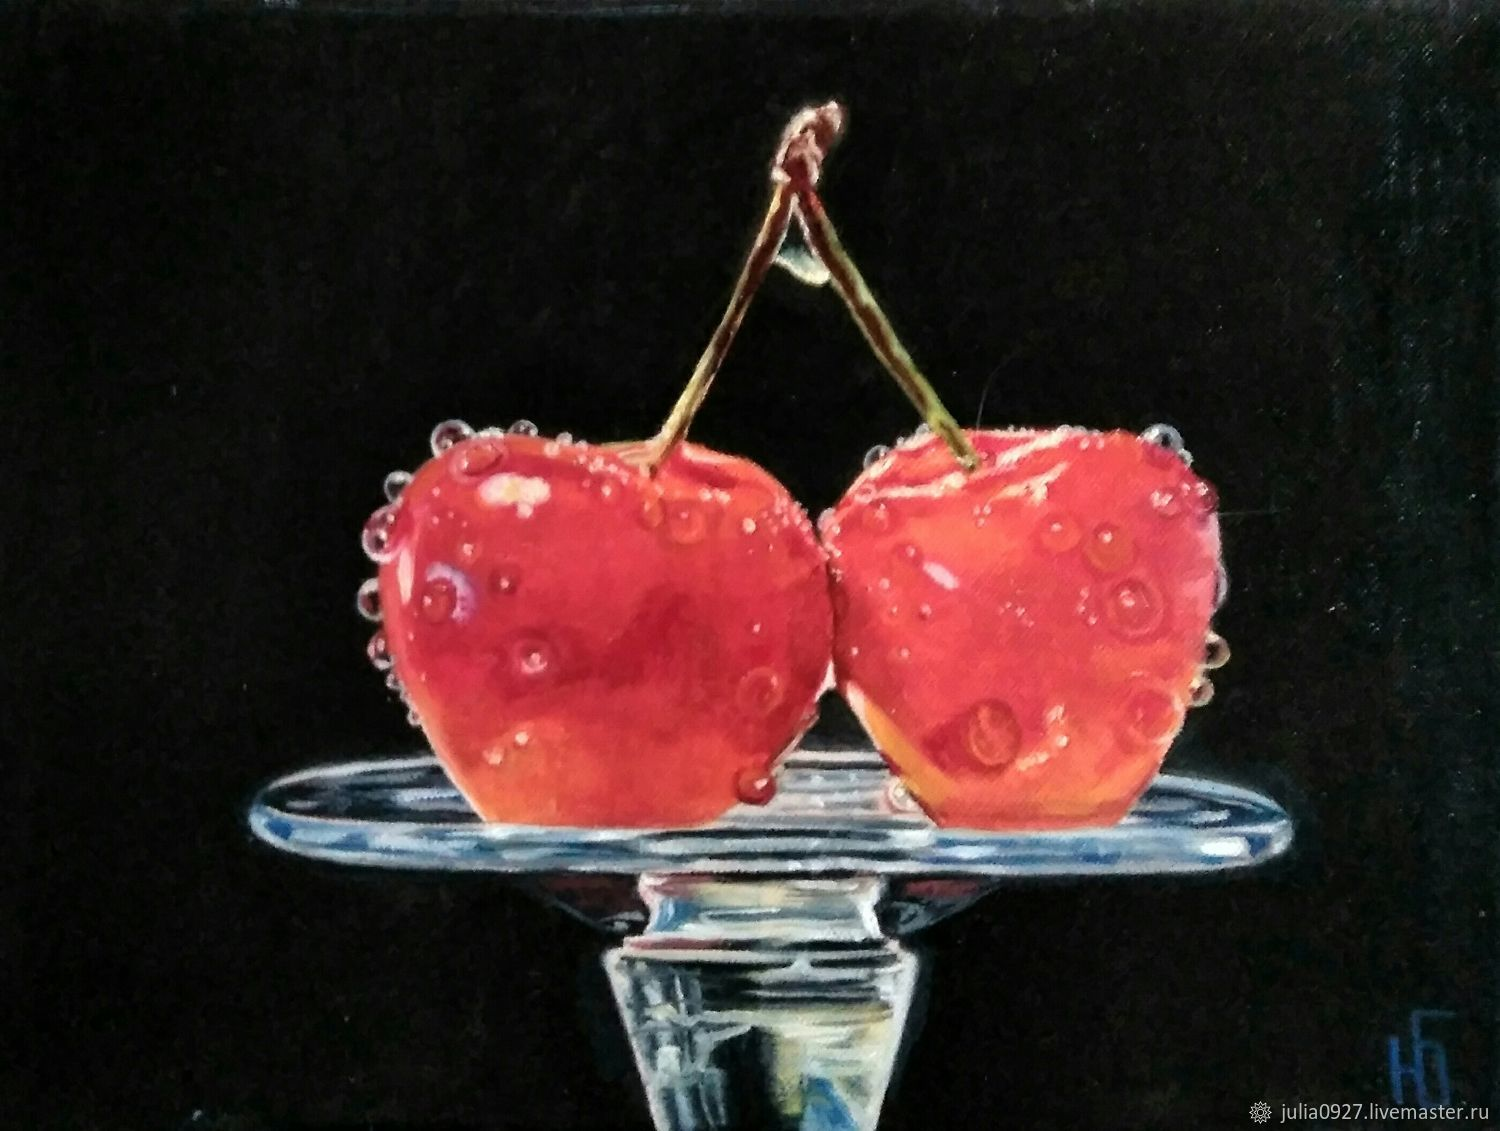 Painting cherry cherry glass on a black background hyperrealism on hol, Pictures, Ekaterinburg,  Фото №1